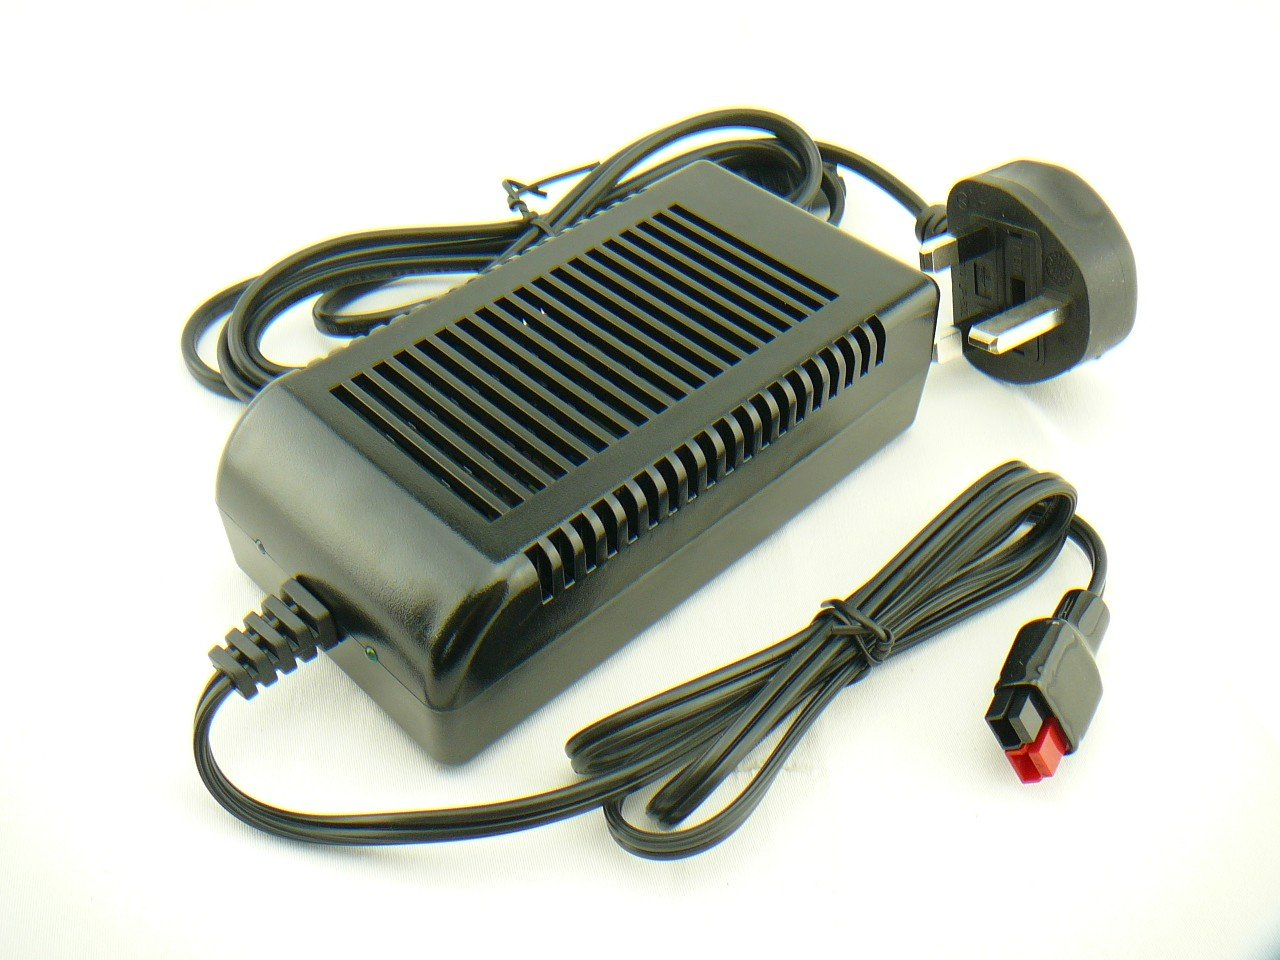 Lead Acid Battery Charger for Fraser and any Torberry battery connection